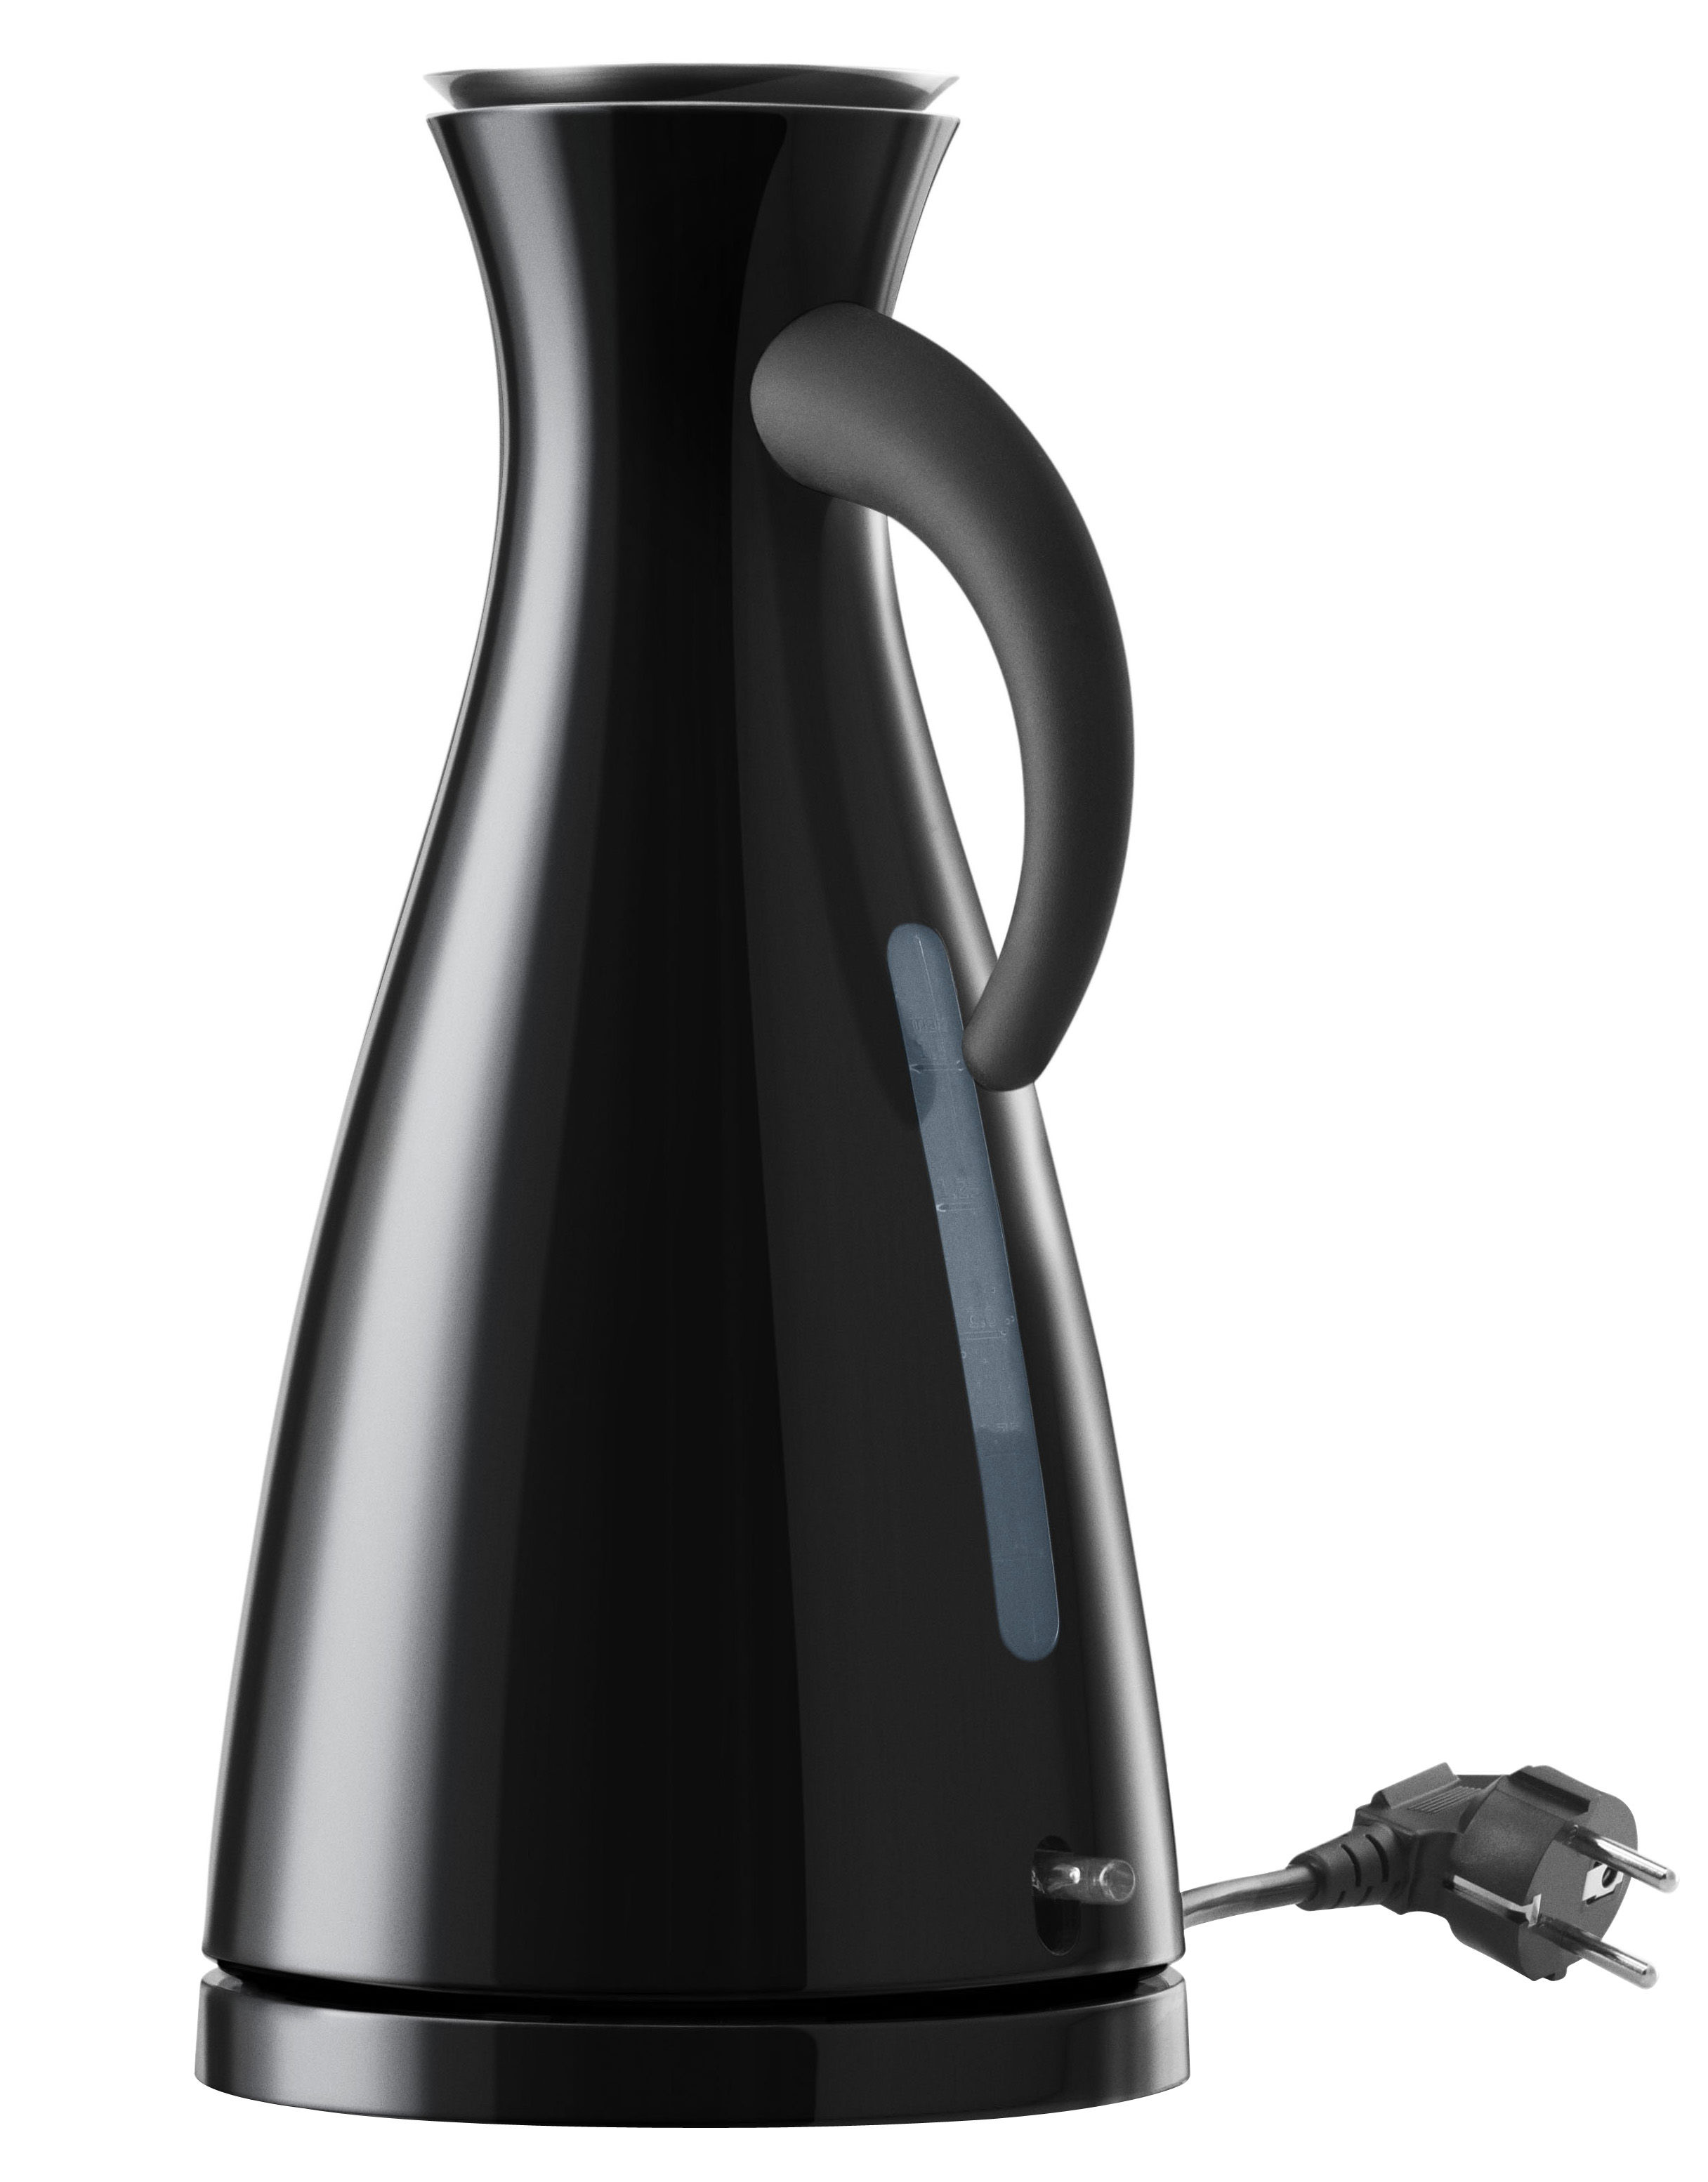 electric kettle 1 5 l black by eva solo. Black Bedroom Furniture Sets. Home Design Ideas